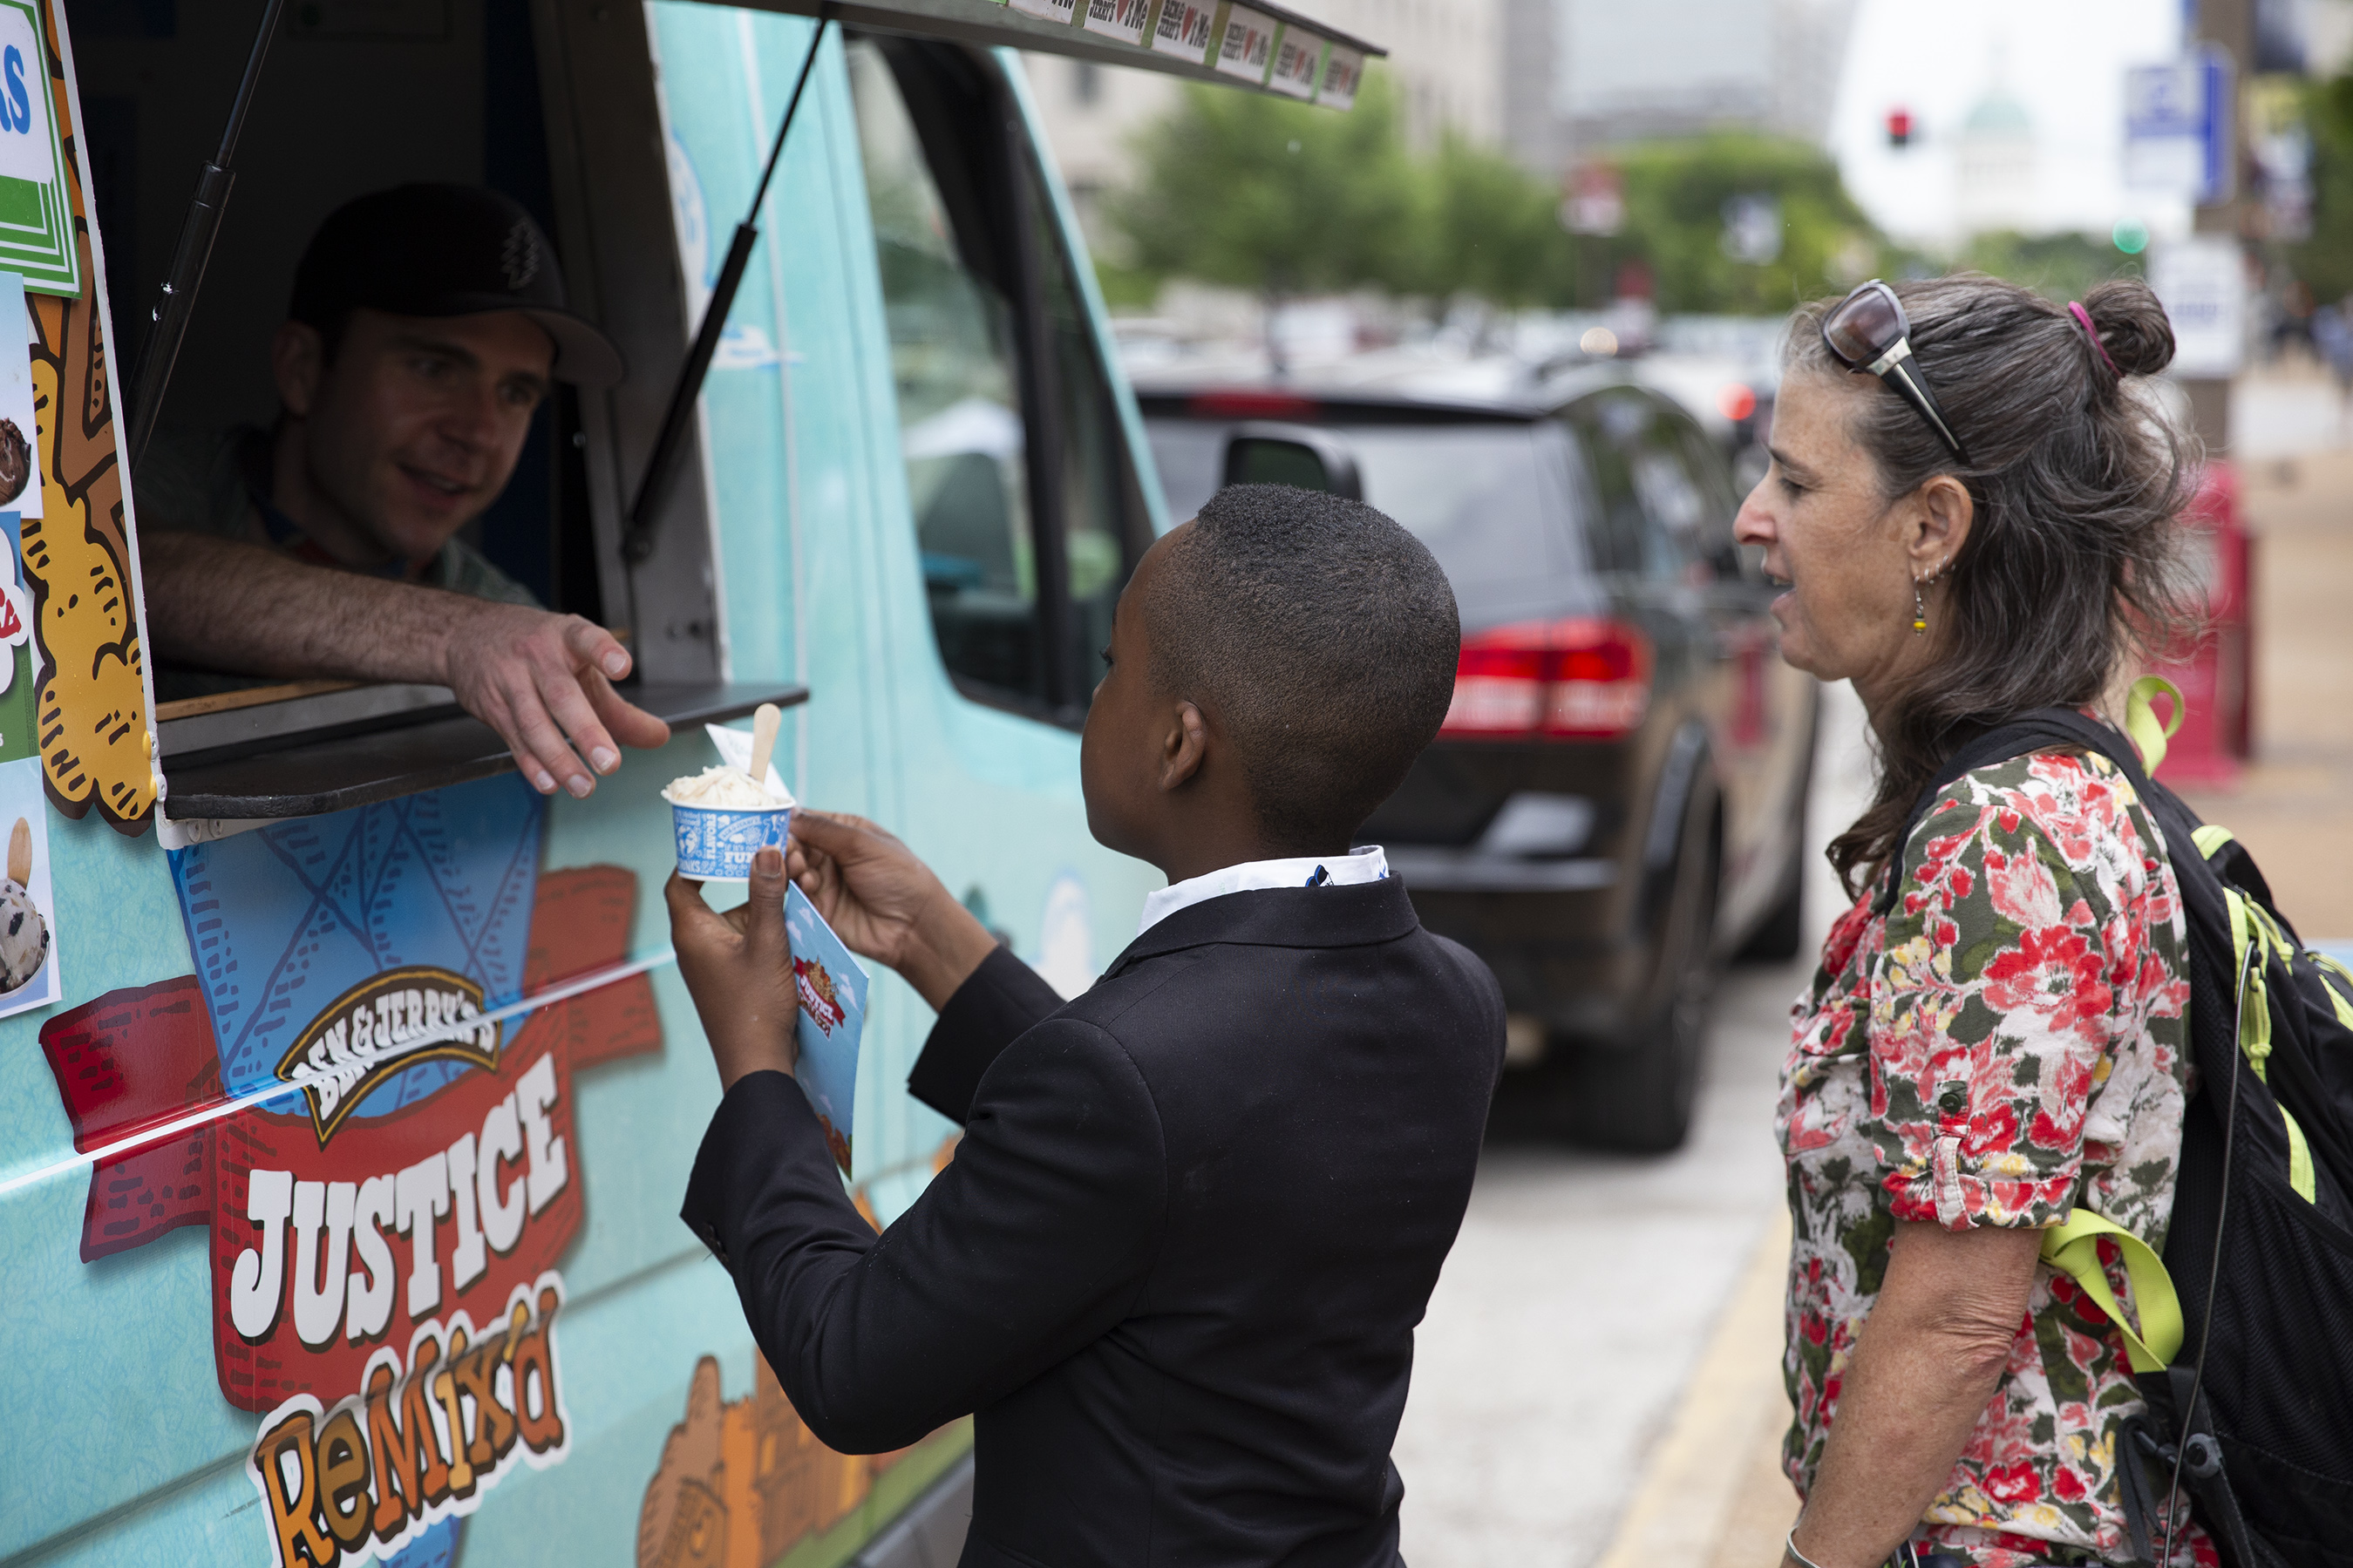 Ben & Jerry's uses its Scoop Truck to engage people around criminal justice issues. It's one of several ways the company uses its resources to support social movements.